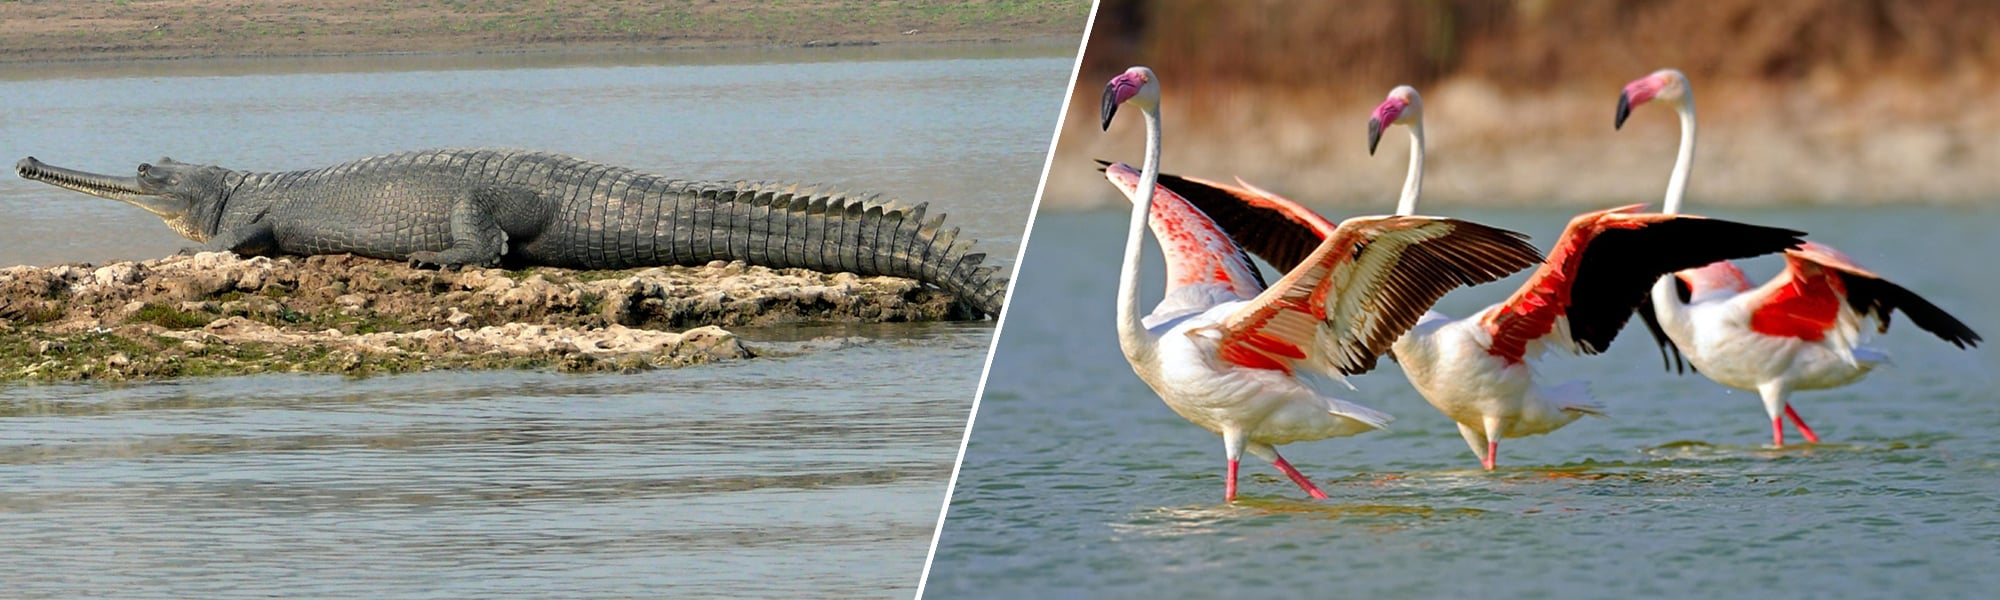 Chambal Wildlife Sanctuary